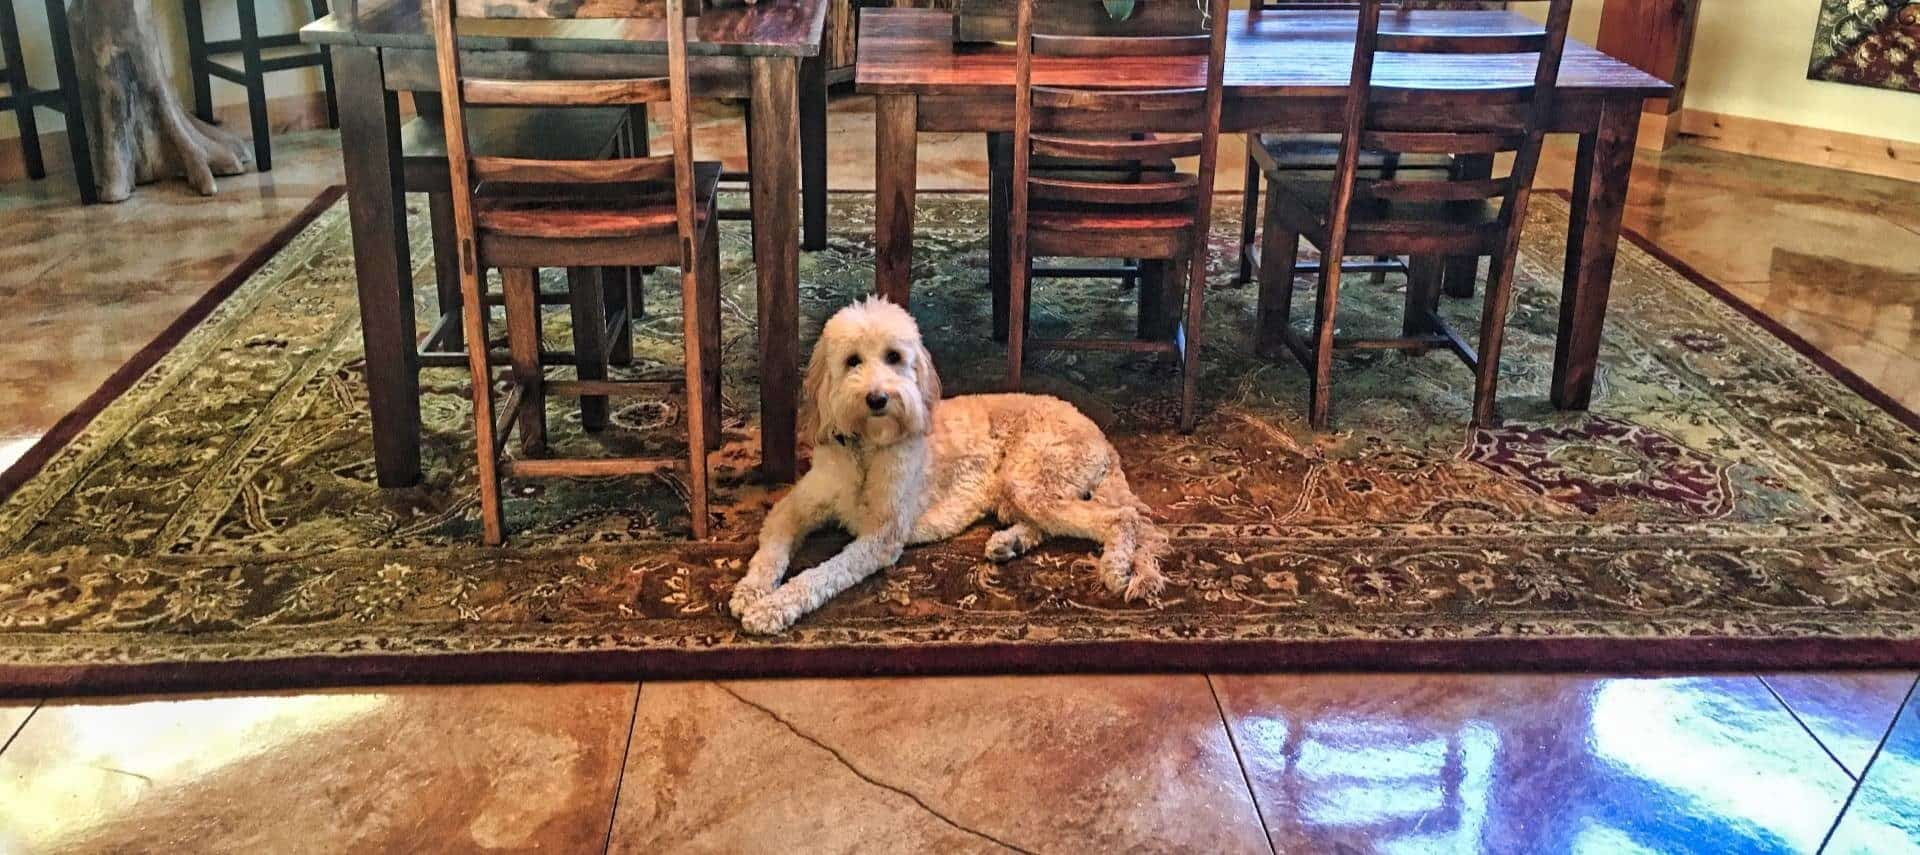 White fluffy dog posing for the camera laying on large area rug in front of wooden tables and chairs